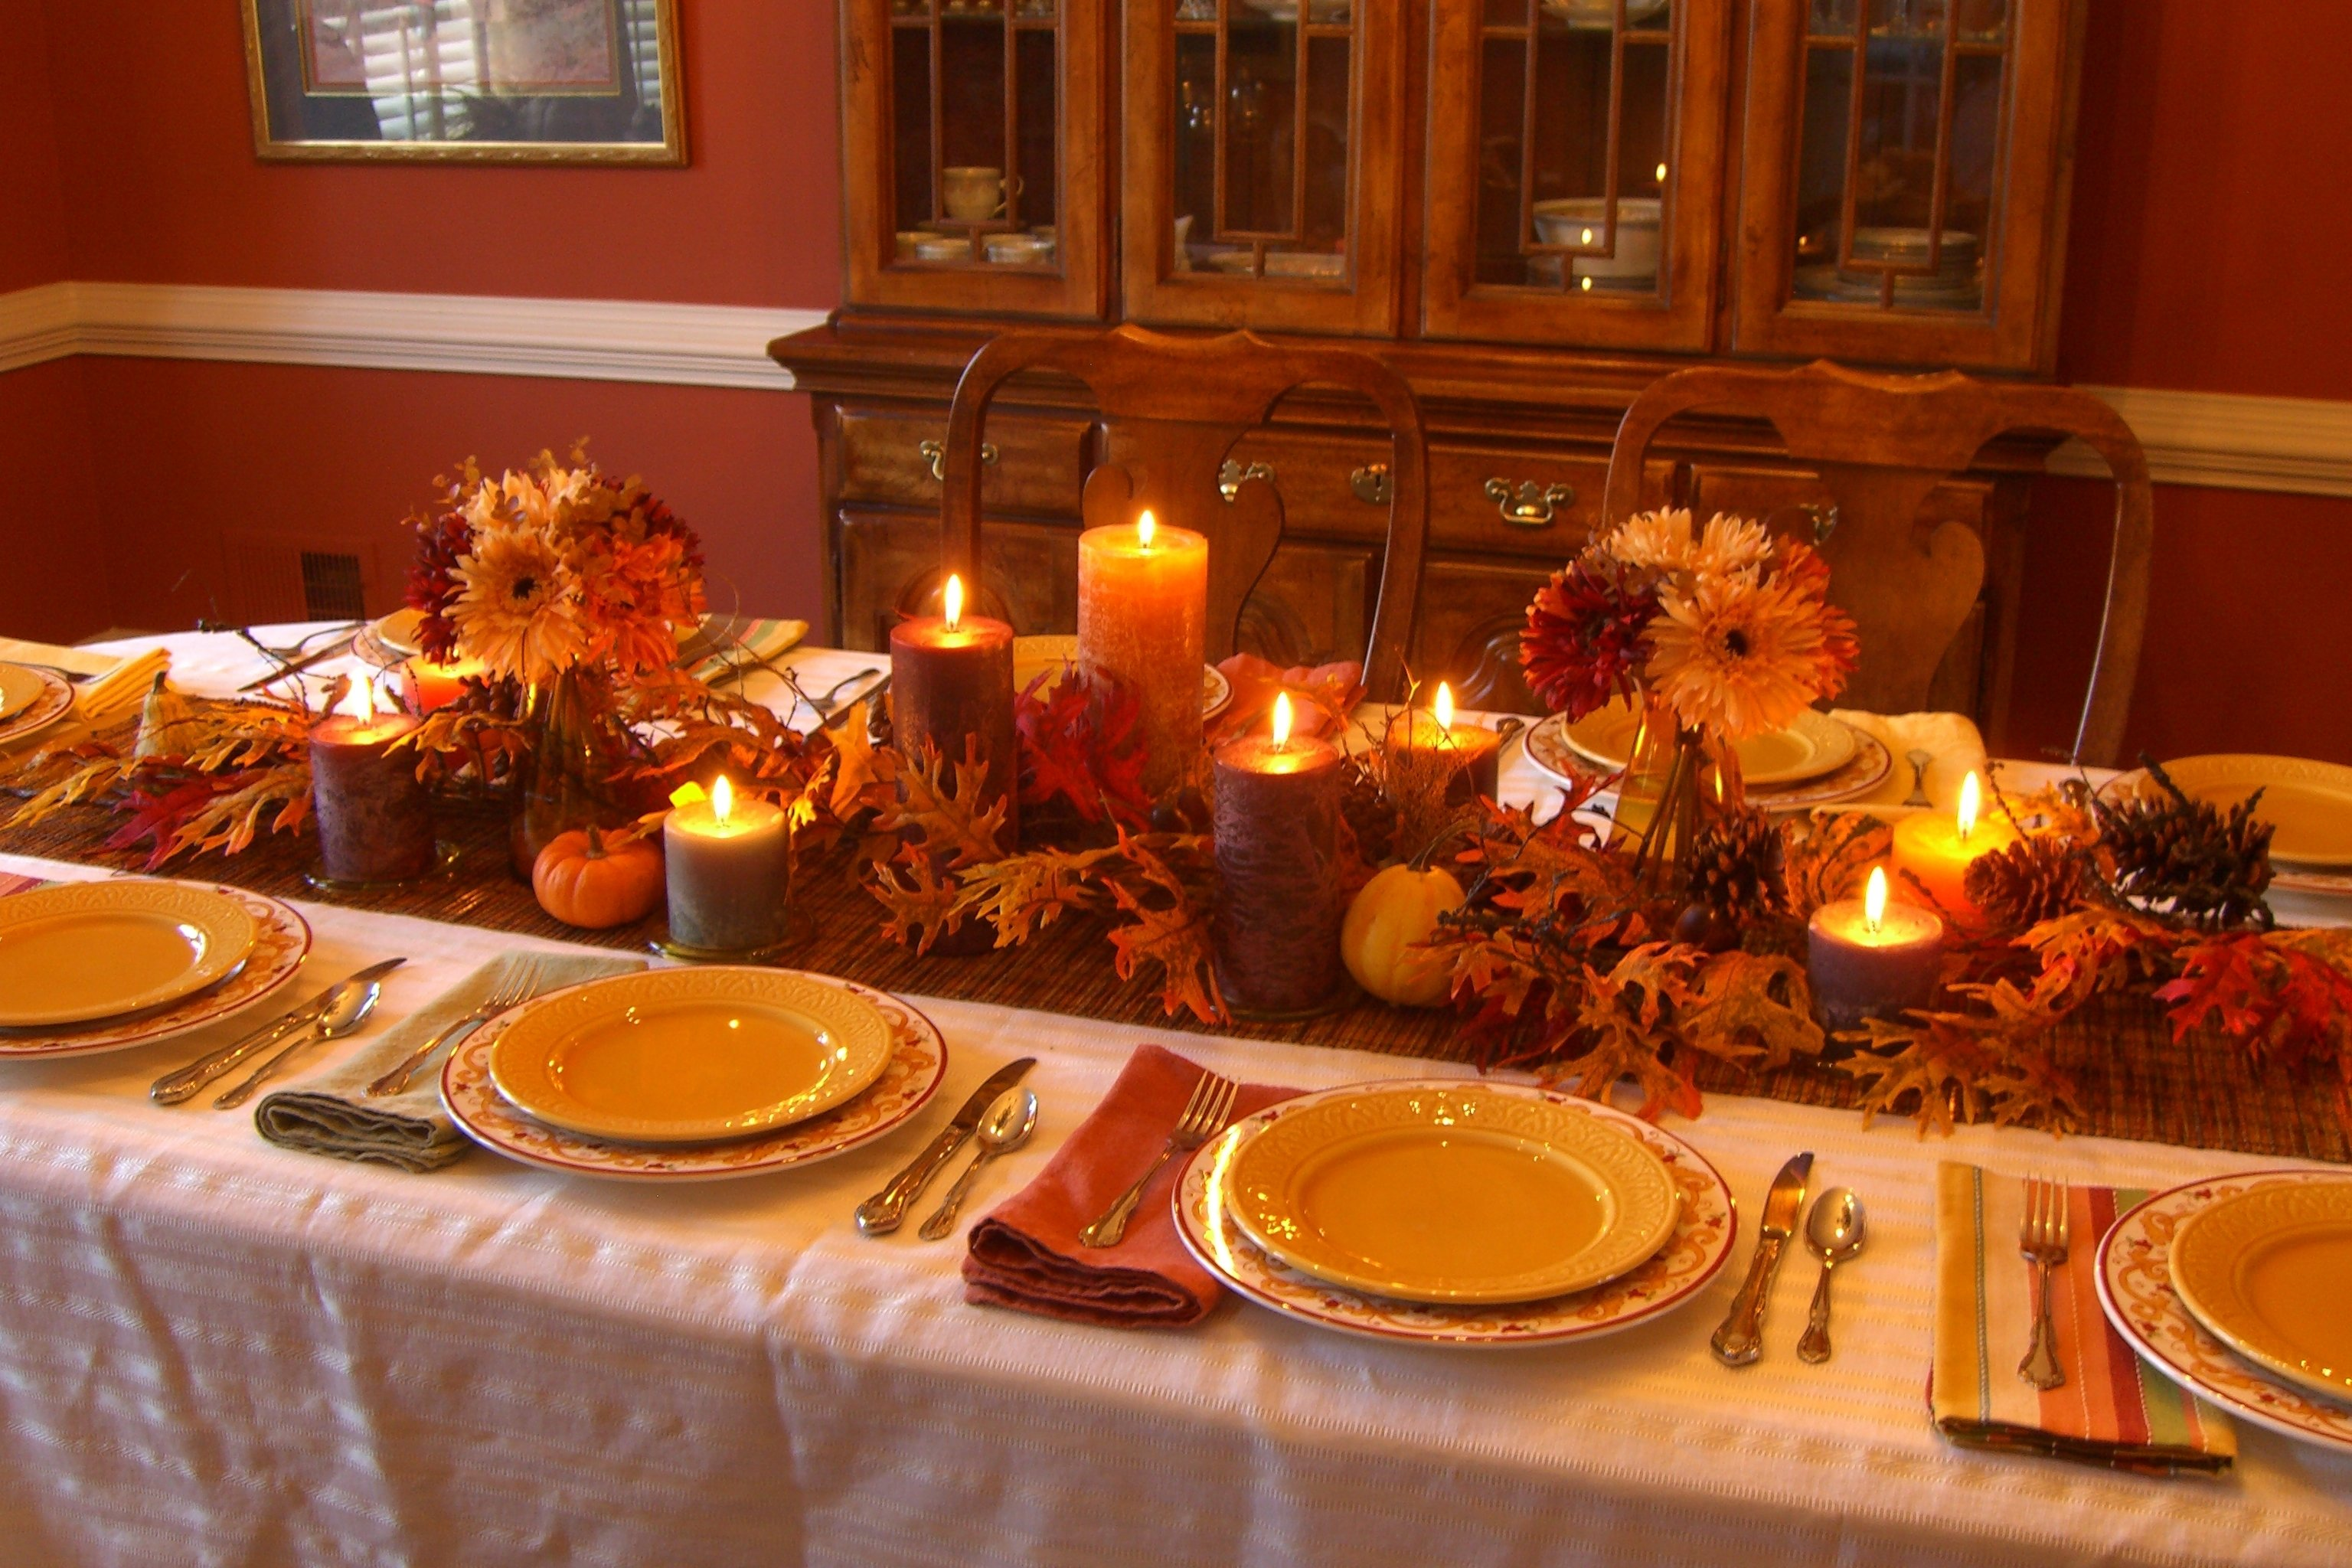 10 Wonderful Thanksgiving Table Setting Ideas Easy images about decorating with nuts for holidays on pinterest